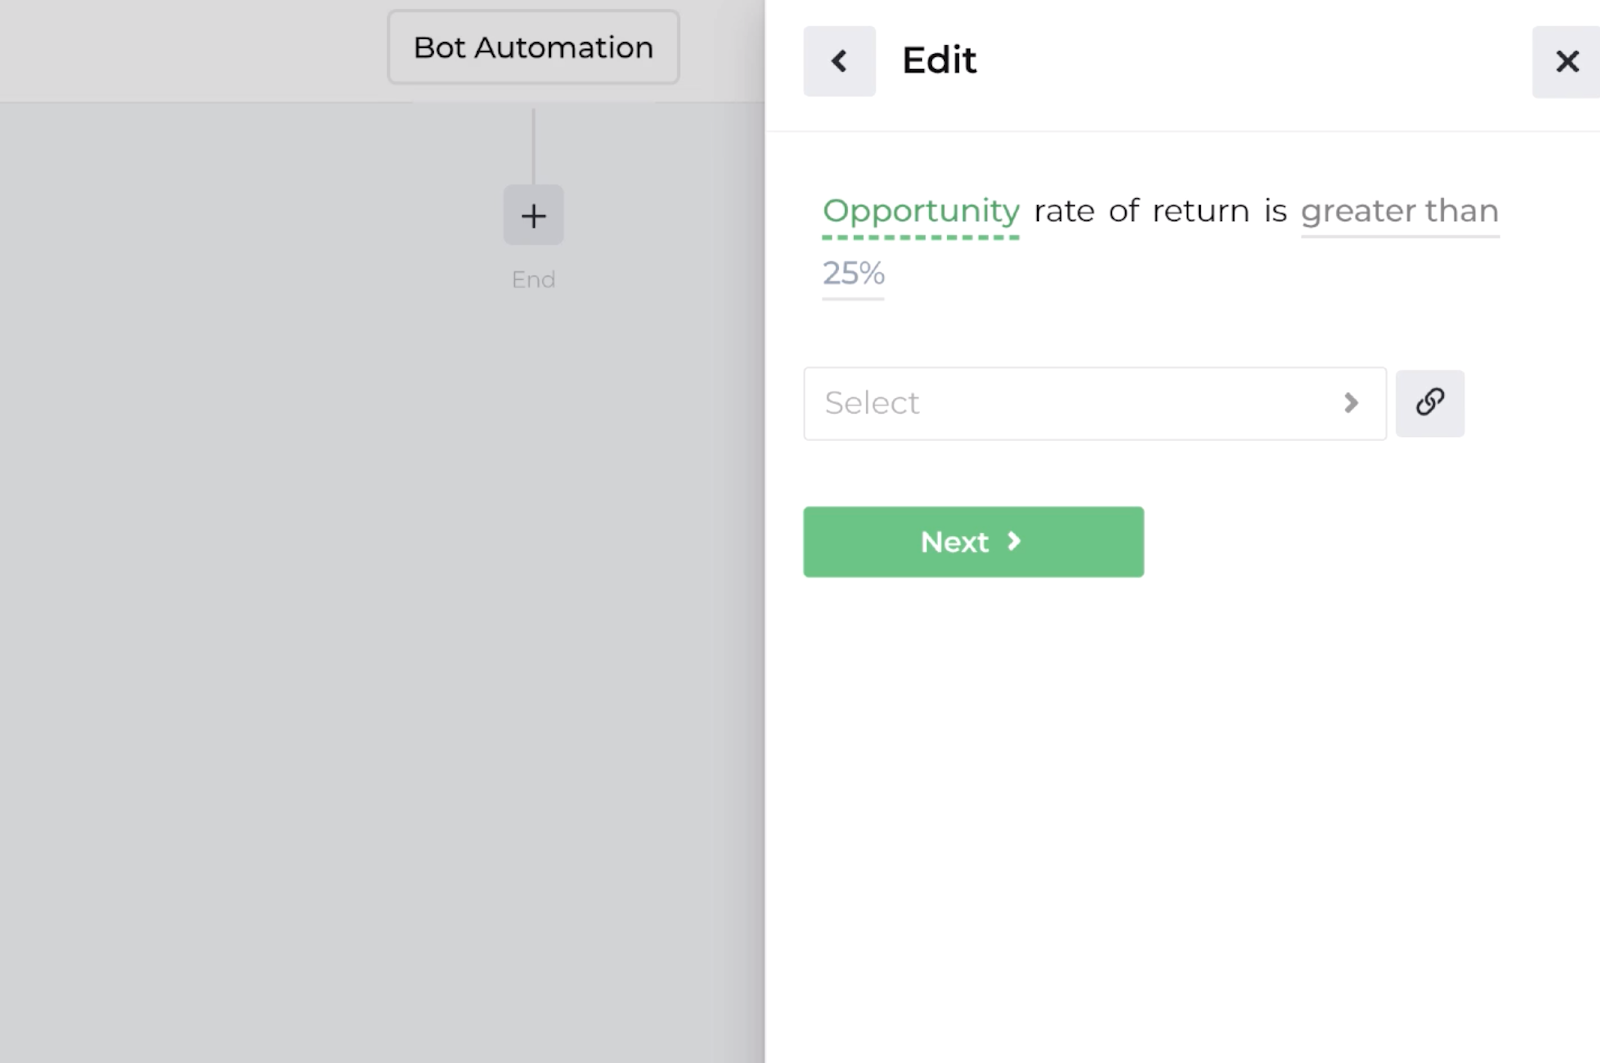 Screenshot displaying the decision recipe for evaluating opportunity return expectations